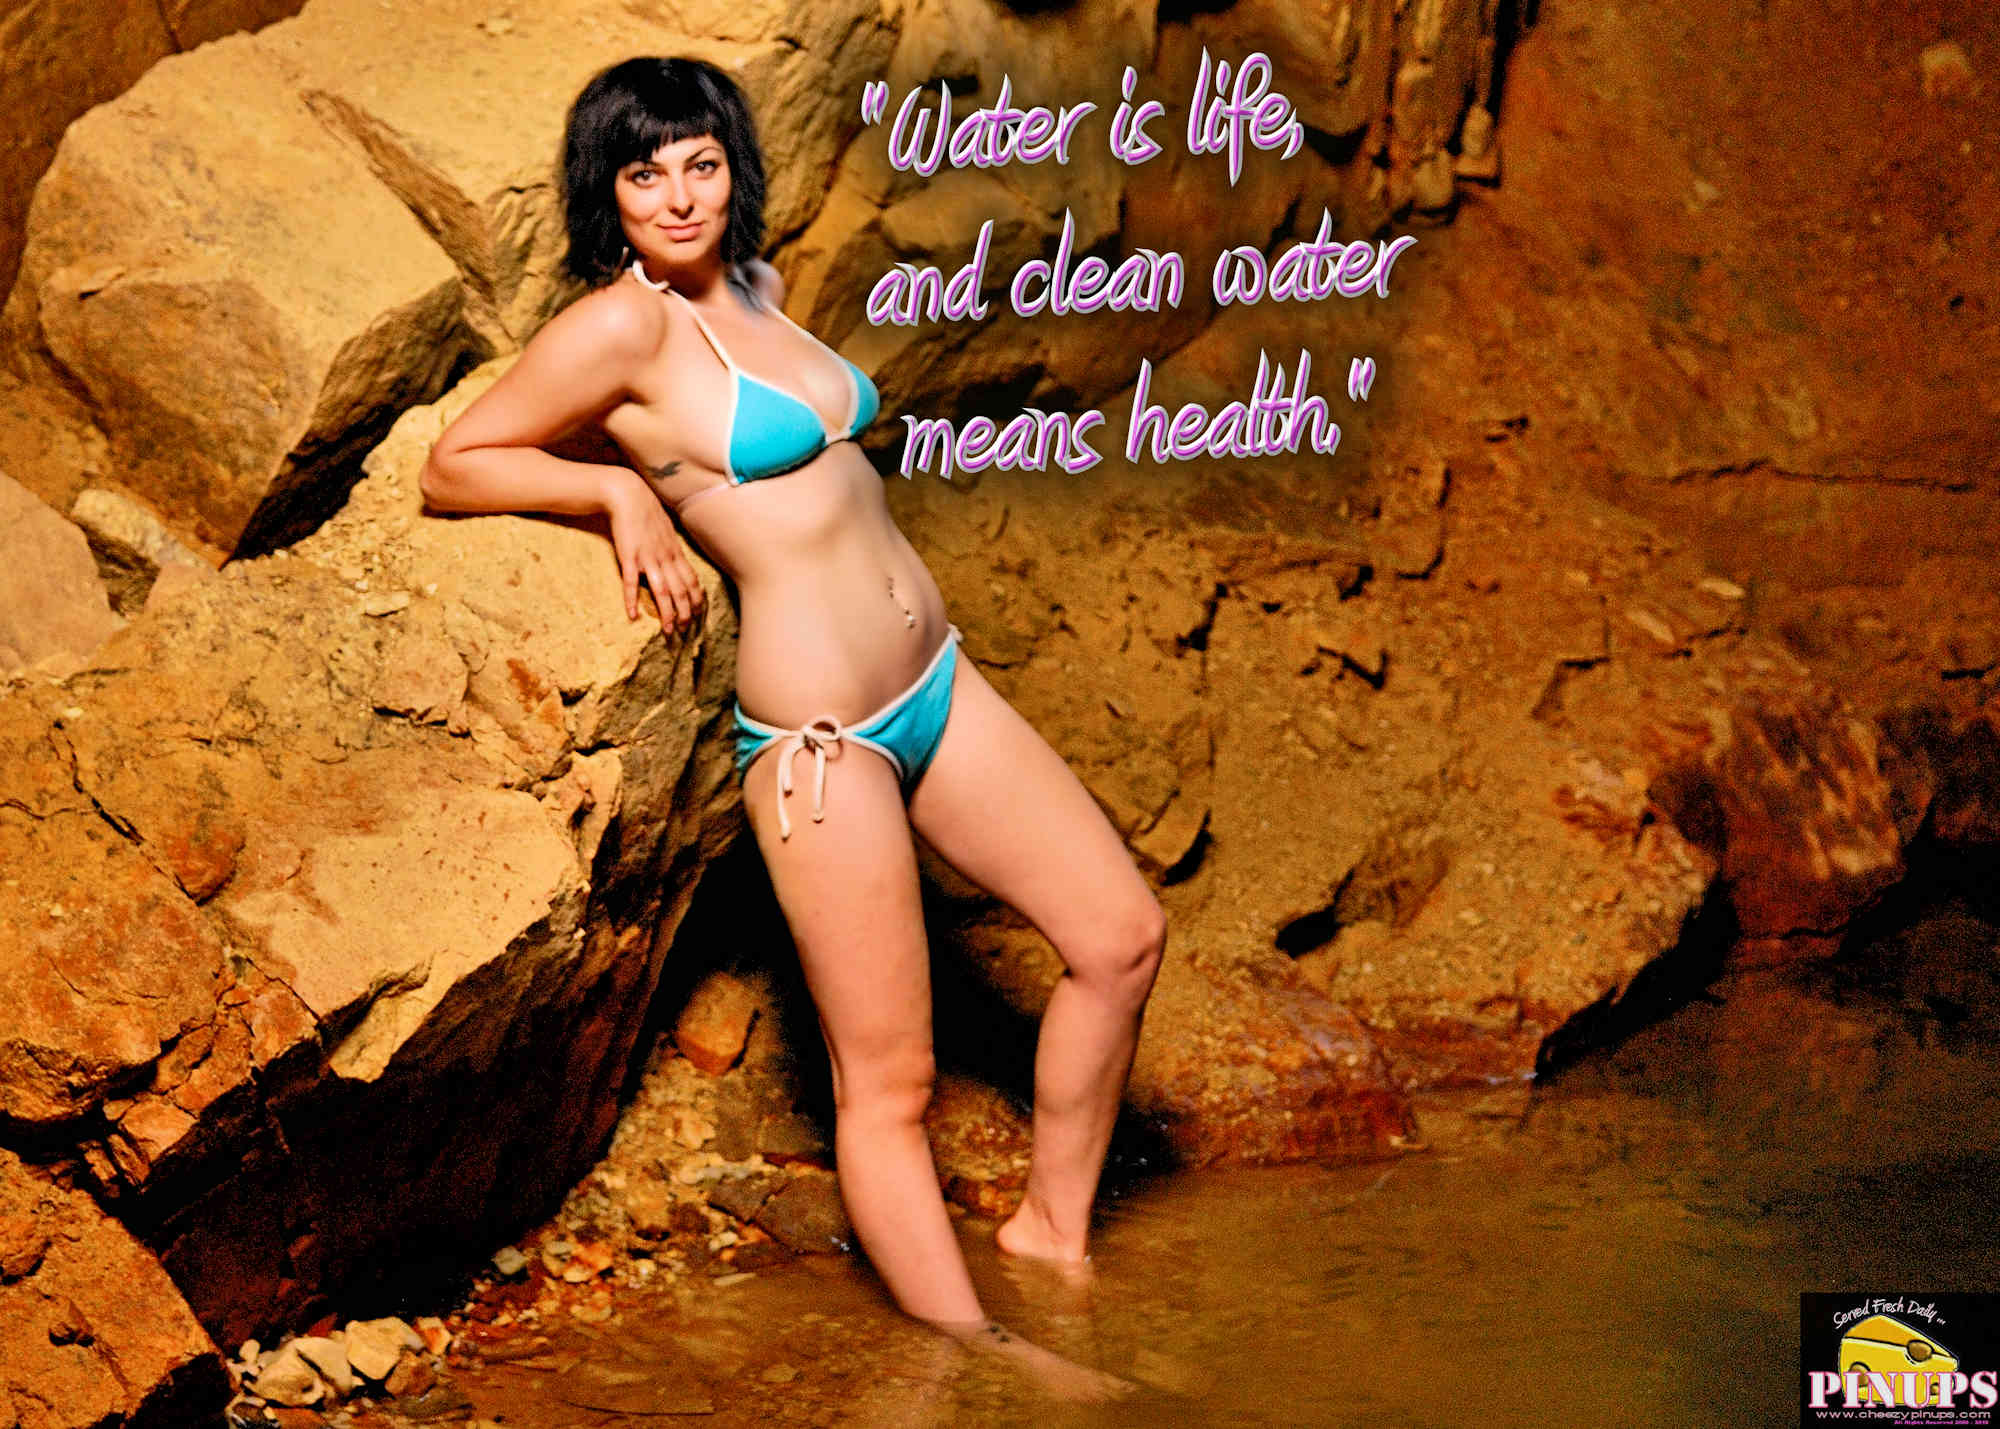 "Cheezy Pinup - May 4, 2018 ""Water is life, and clean water means health."" - Audrey Hepburn Model: Devon"